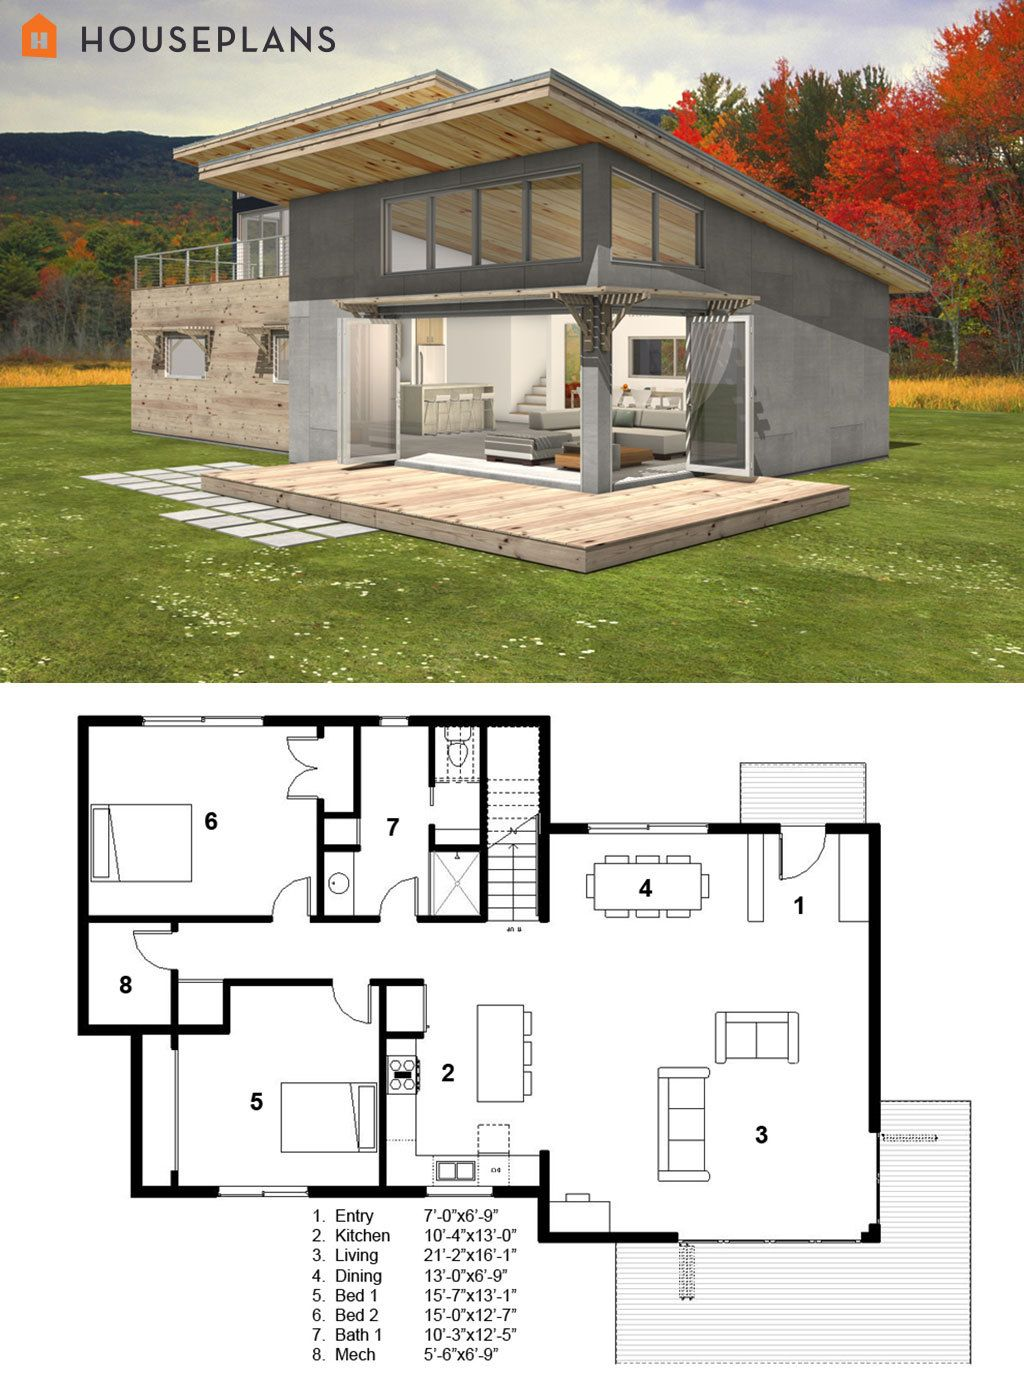 Small modern cabin house plan by freegreen also top tiny design and homes collections rh pinterest